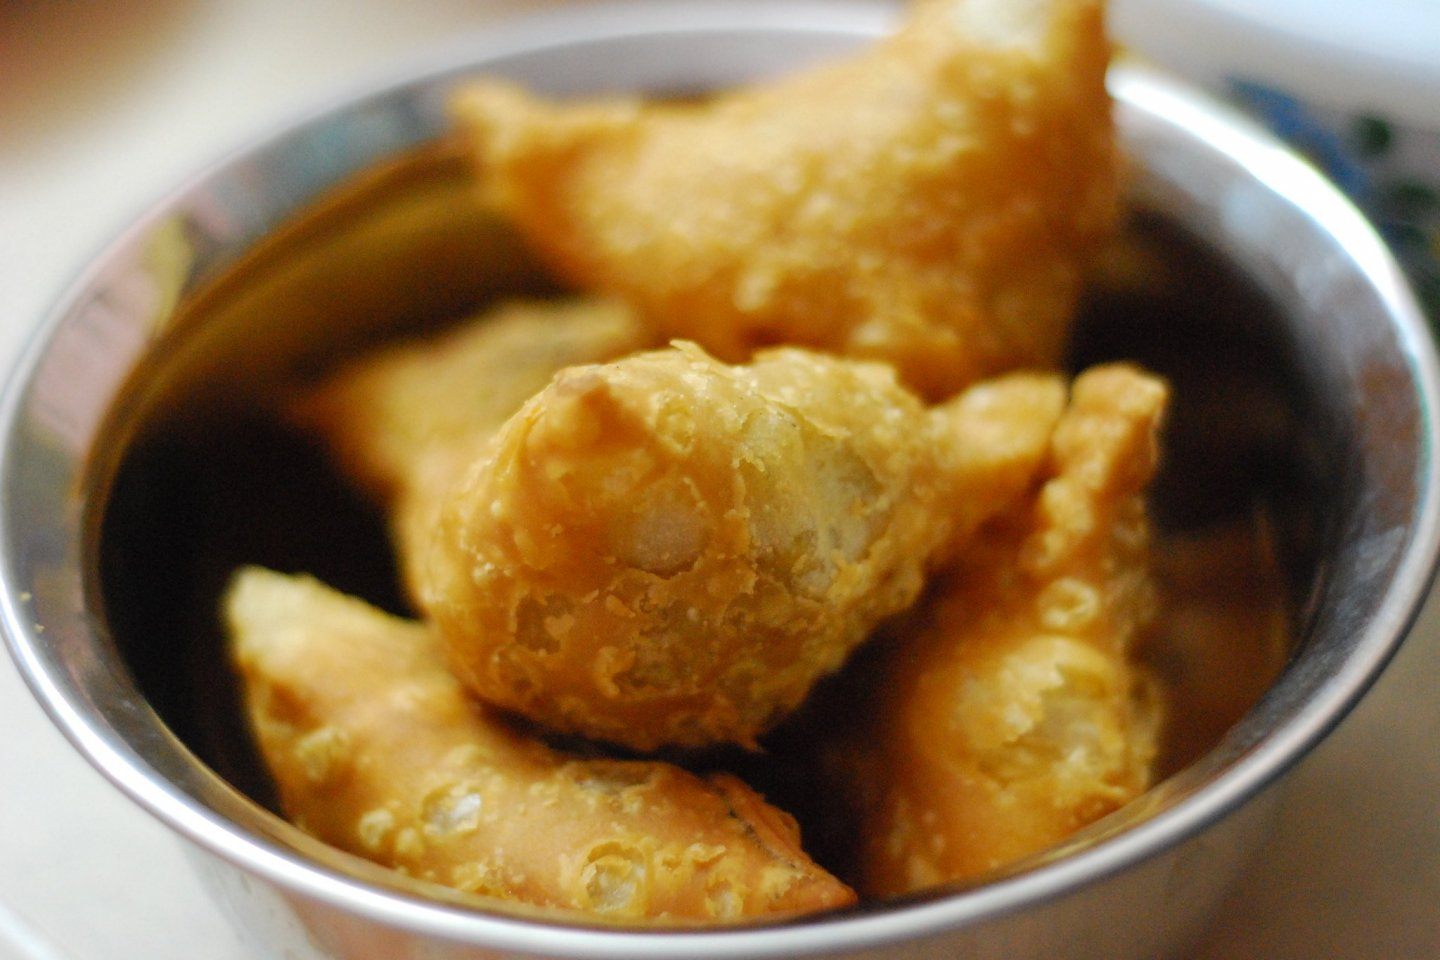 Samosa wheat dumplings